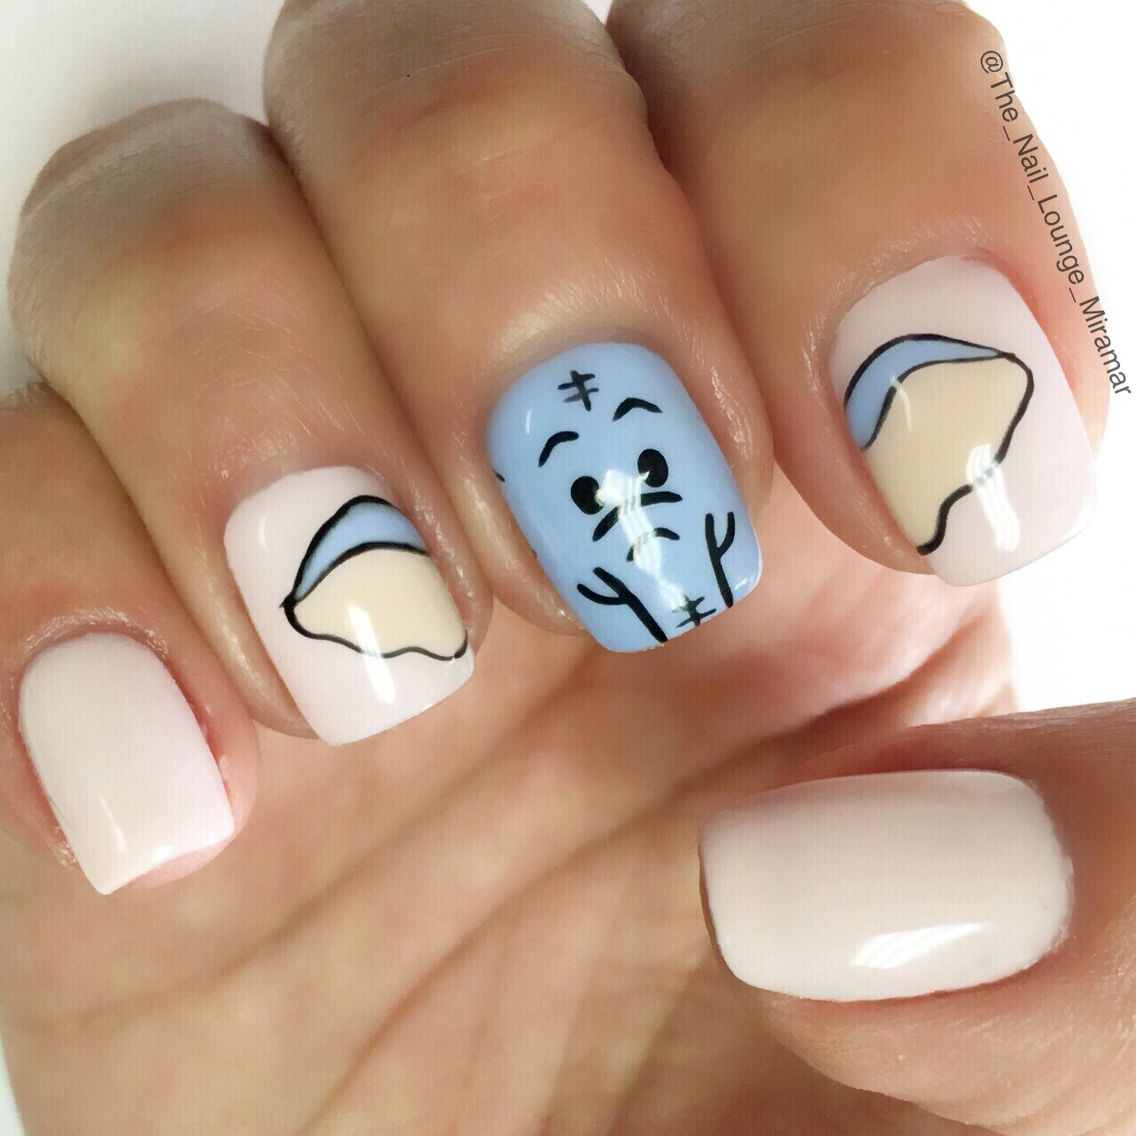 Adorable Nail Art: Cute Baby Shower Elephant Nail Art Design